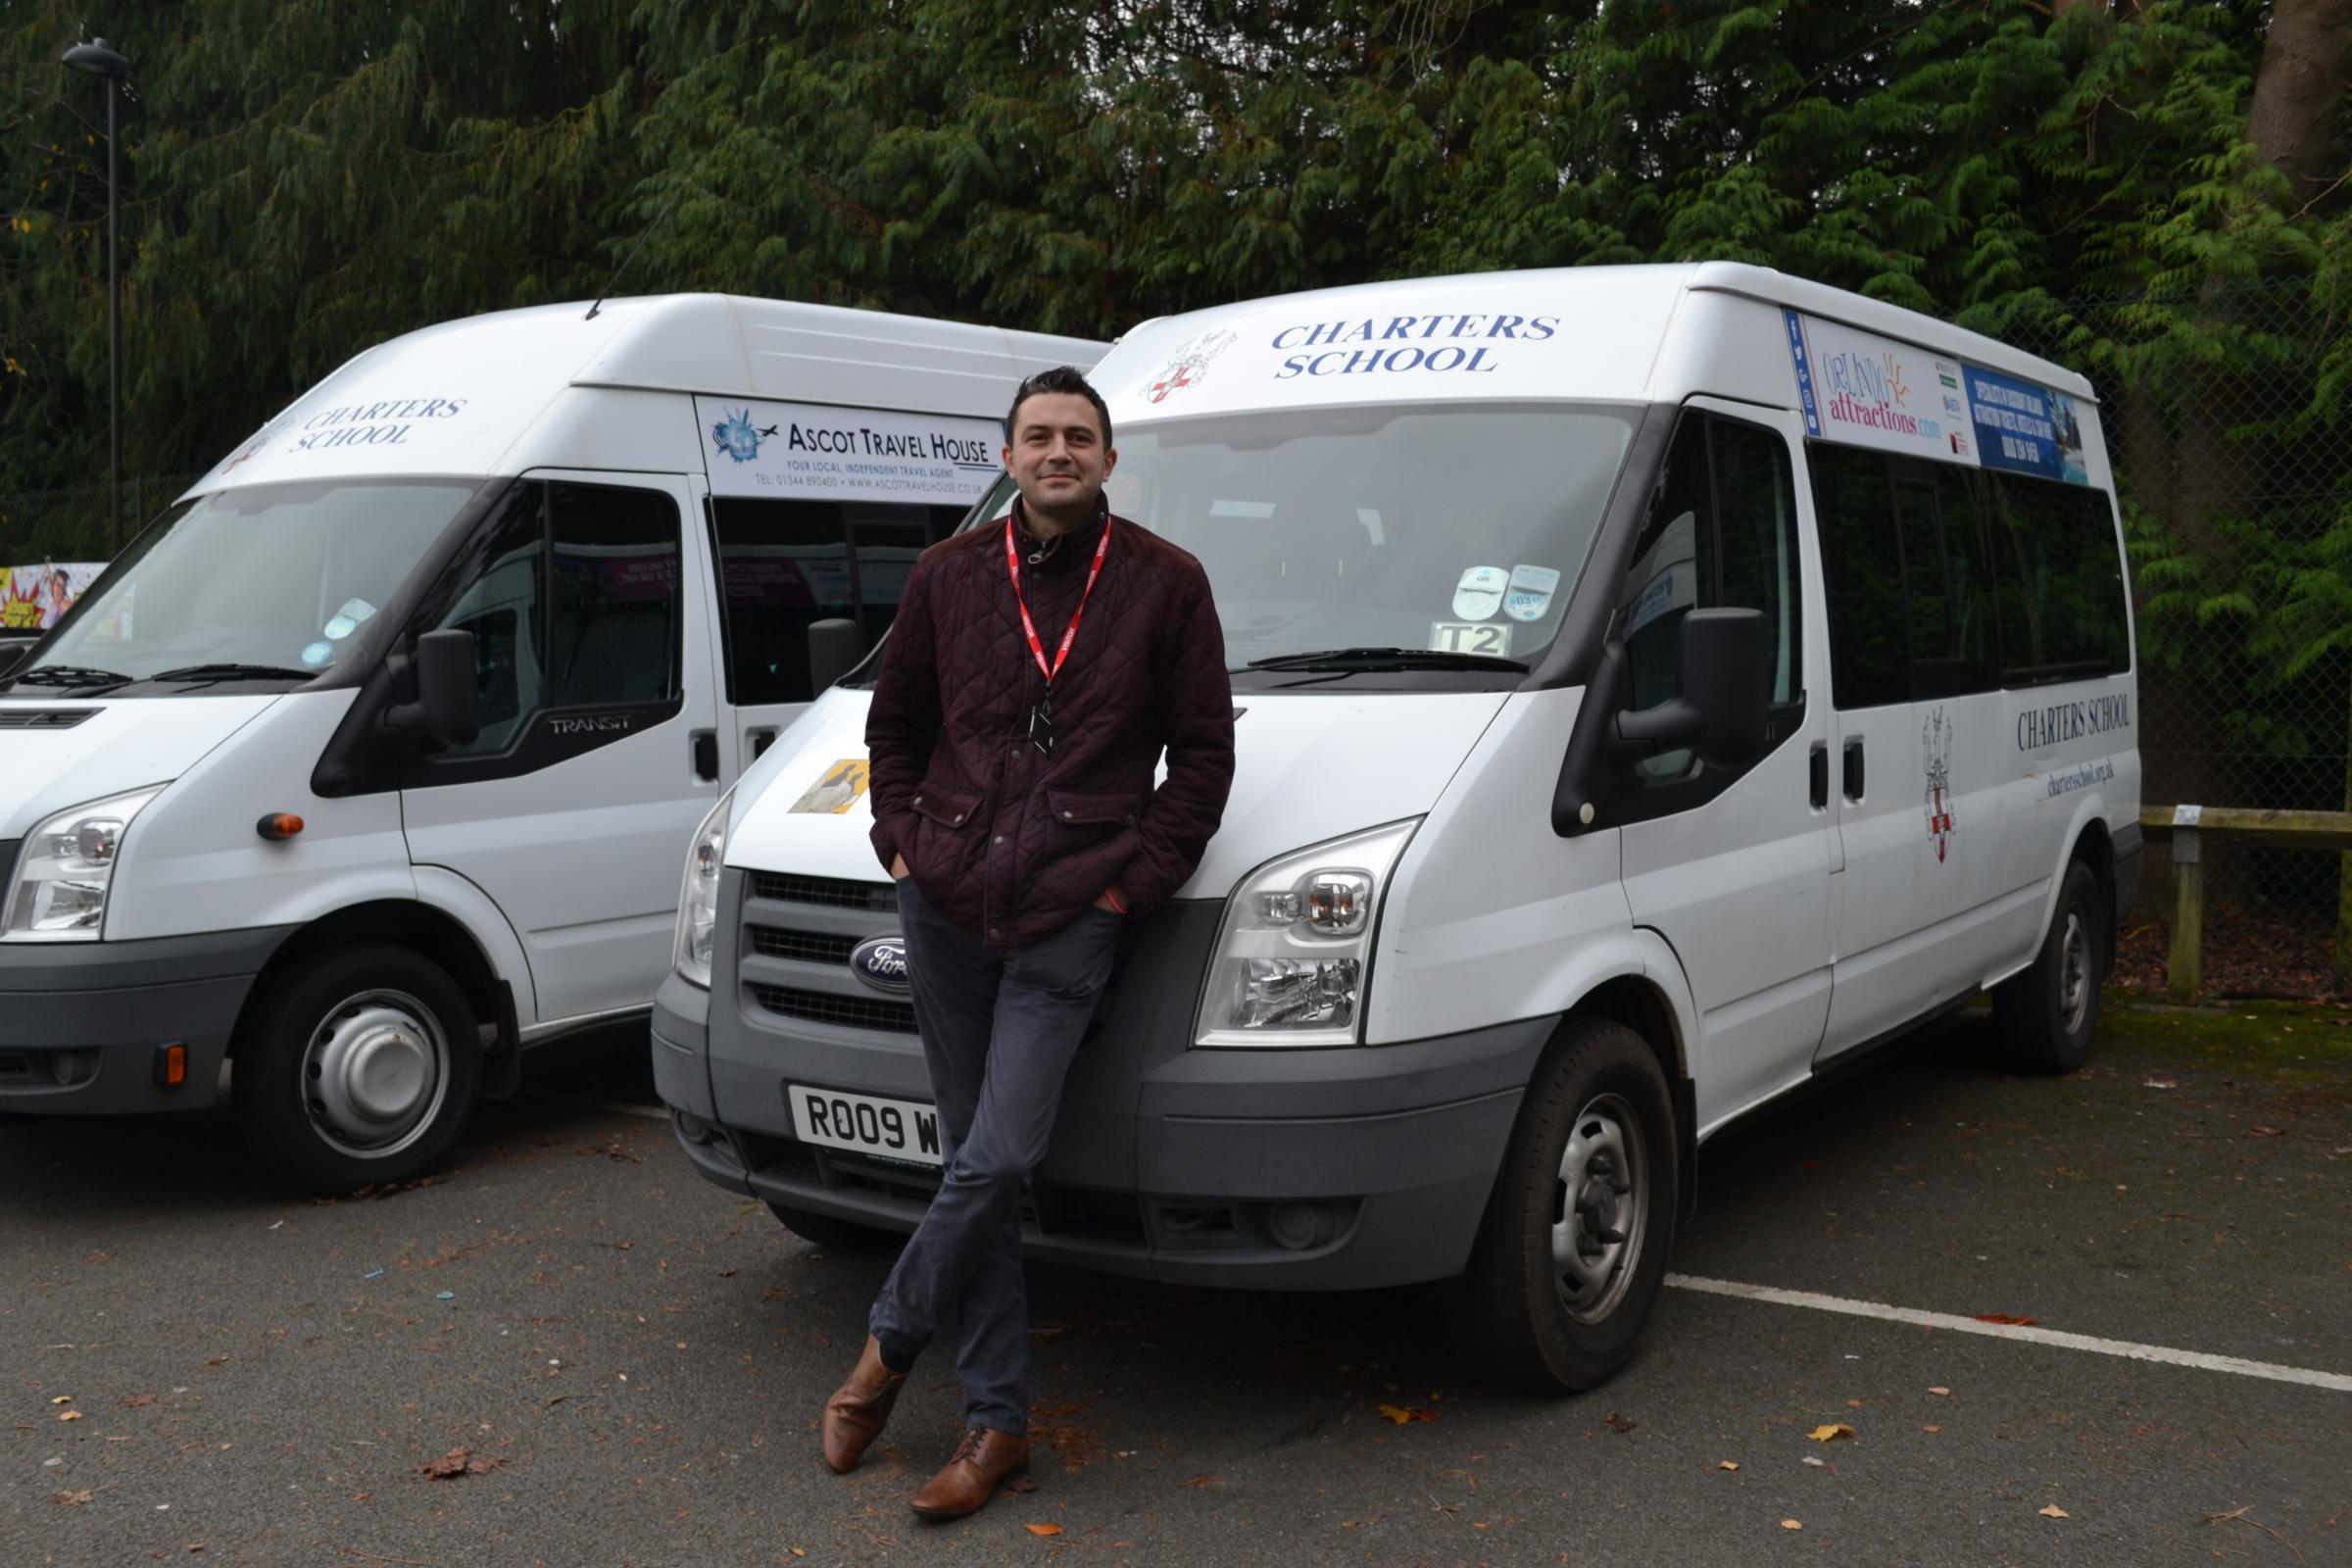 Simon Everett pictured with the mini buses